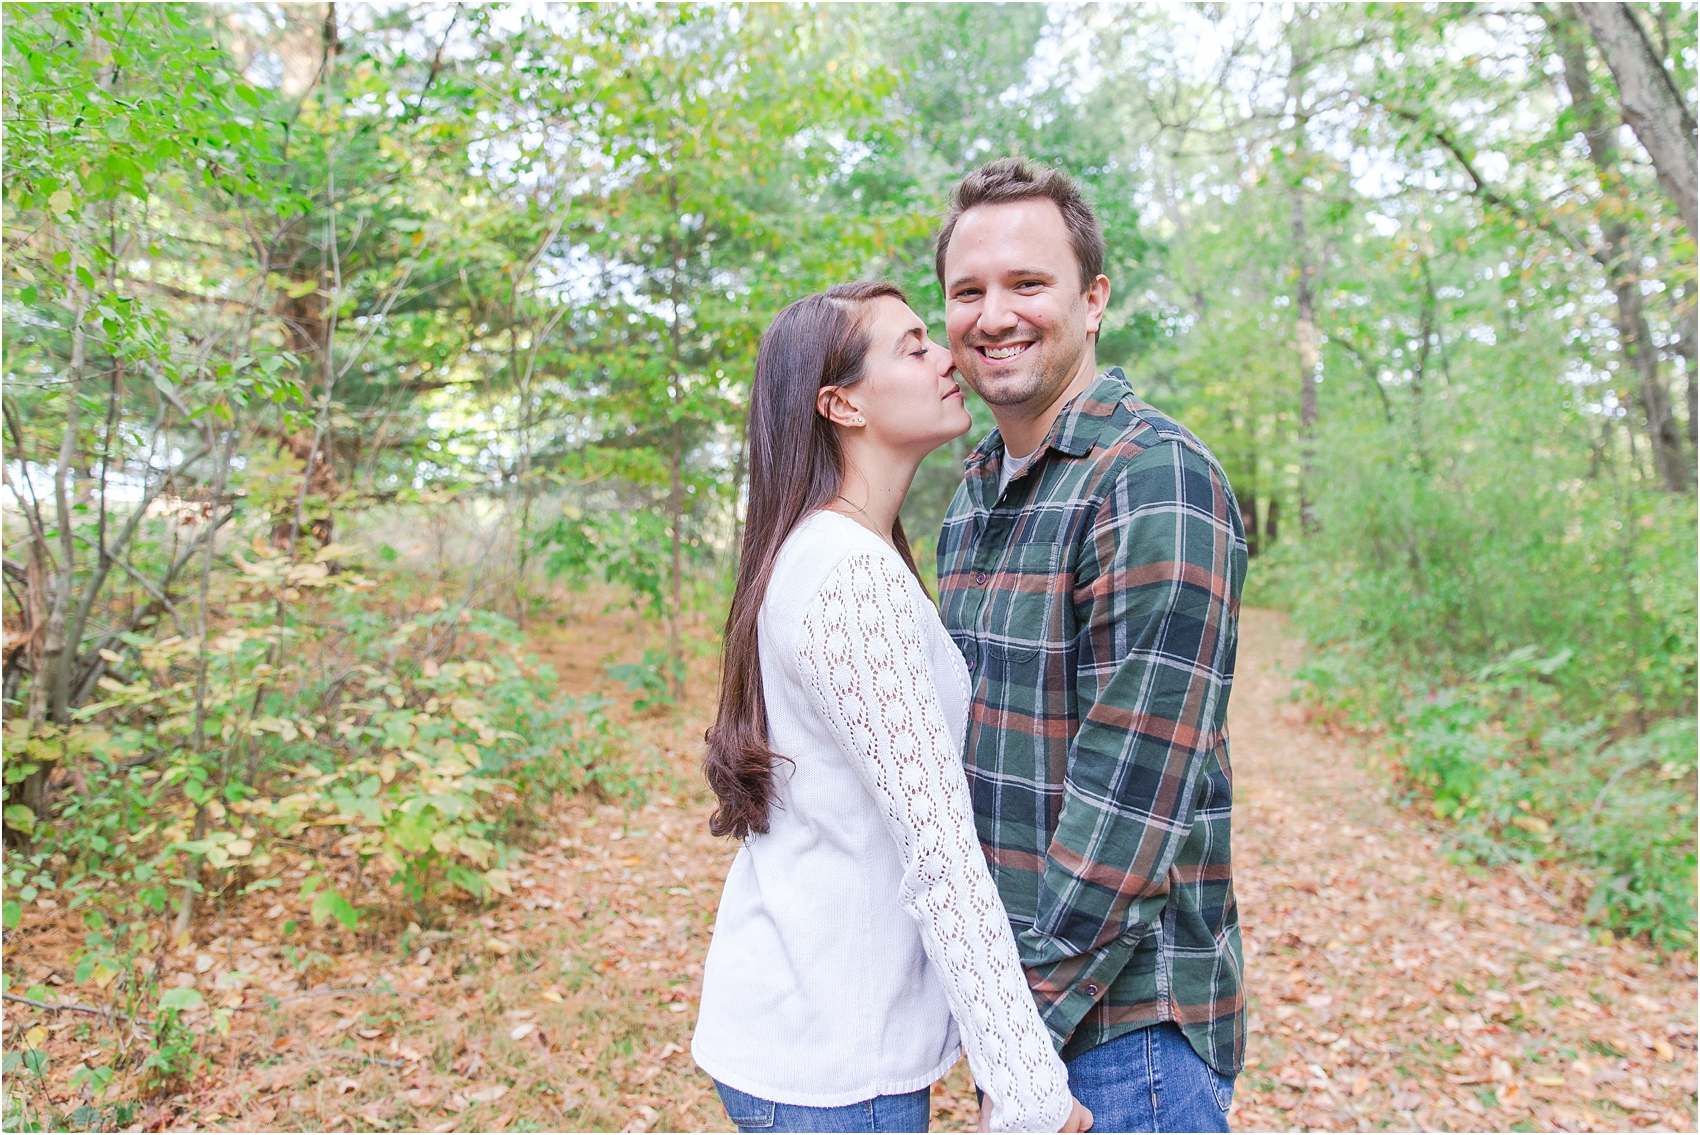 relaxed-autumn-engagement-photos-at-hudson-mills-metropark-in-dexter-mi-by-courtney-carolyn-photography_0025.jpg